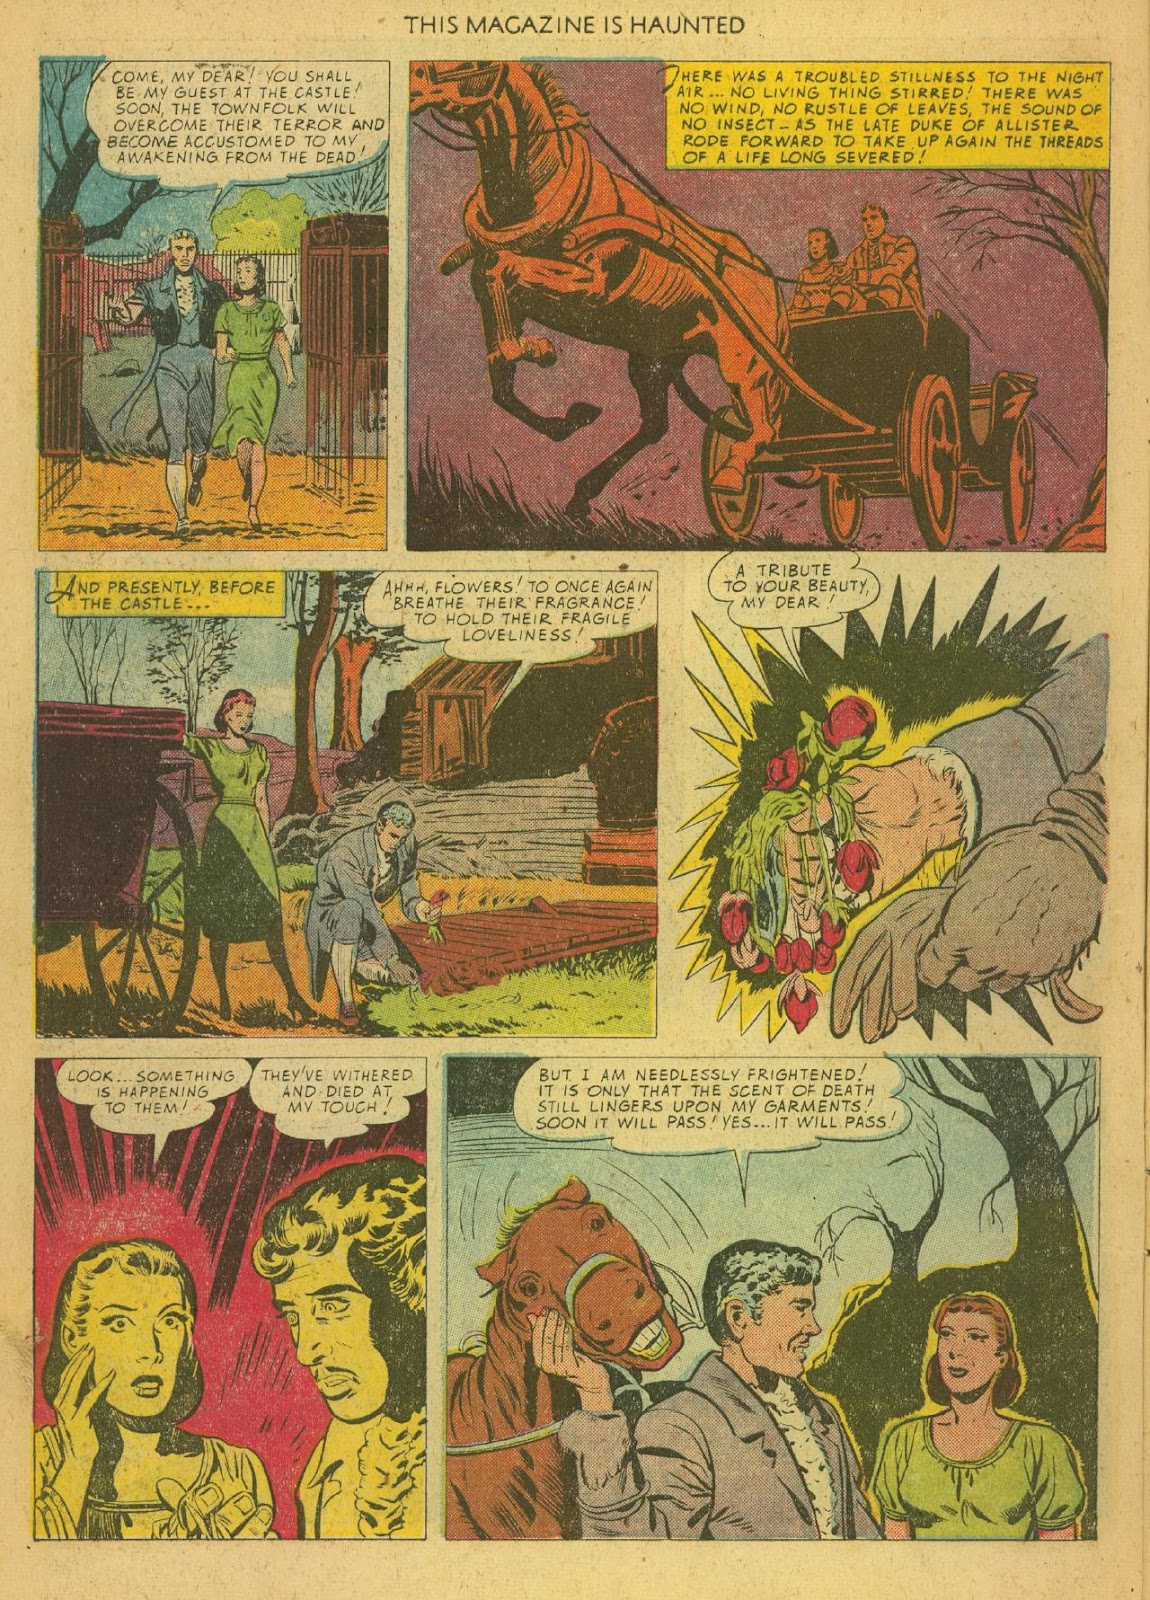 Read online This Magazine Is Haunted comic -  Issue #1 - 10